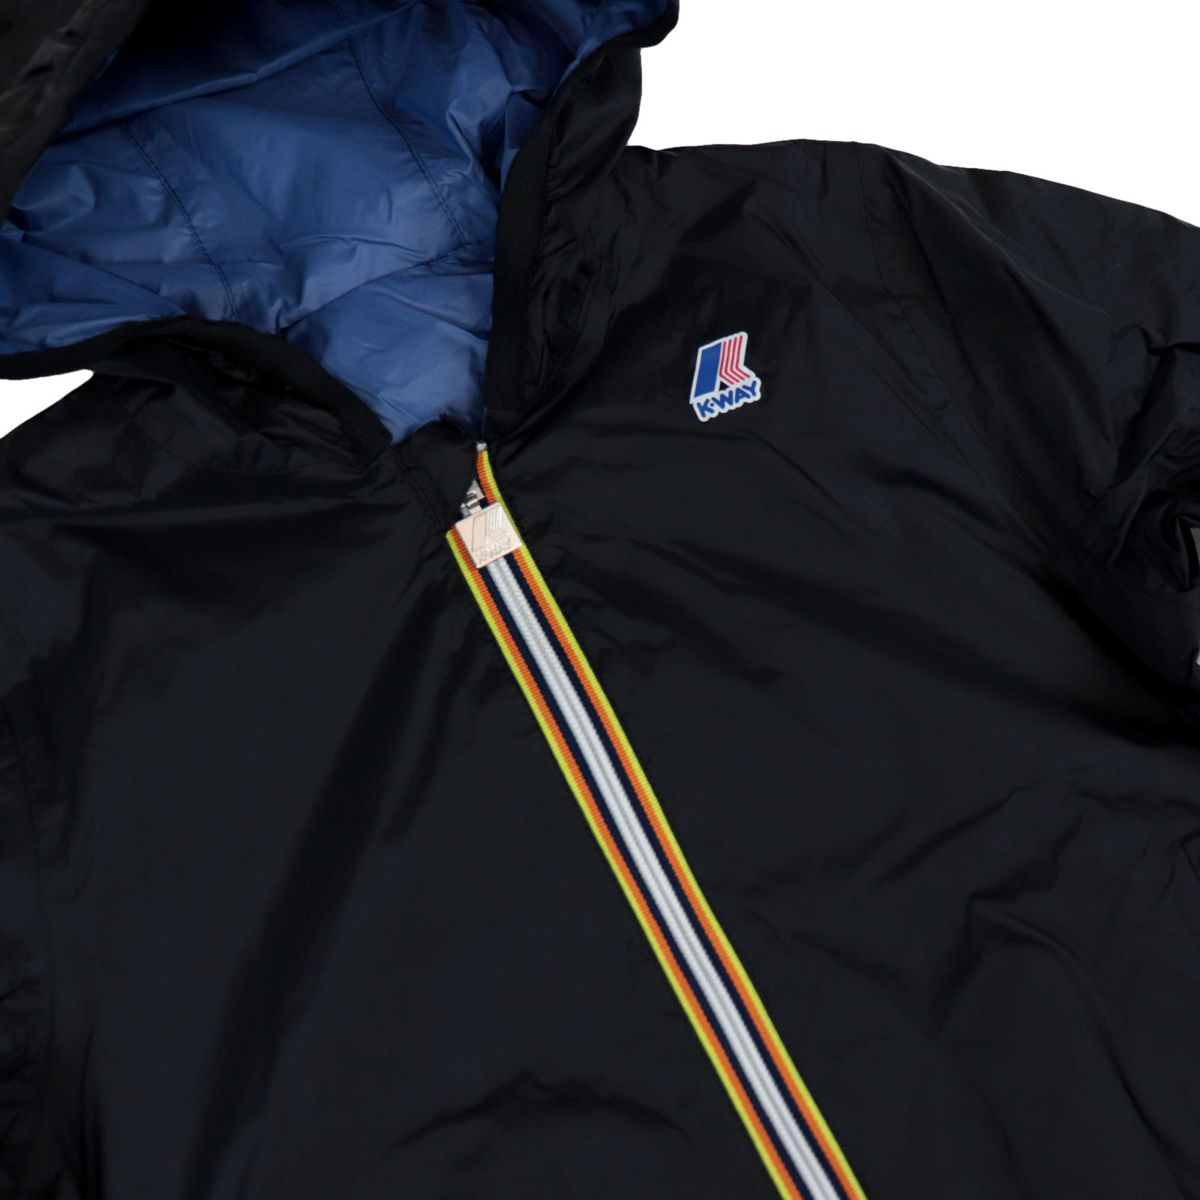 Jacques plus Reversible windbreaker Black / blue K-Way